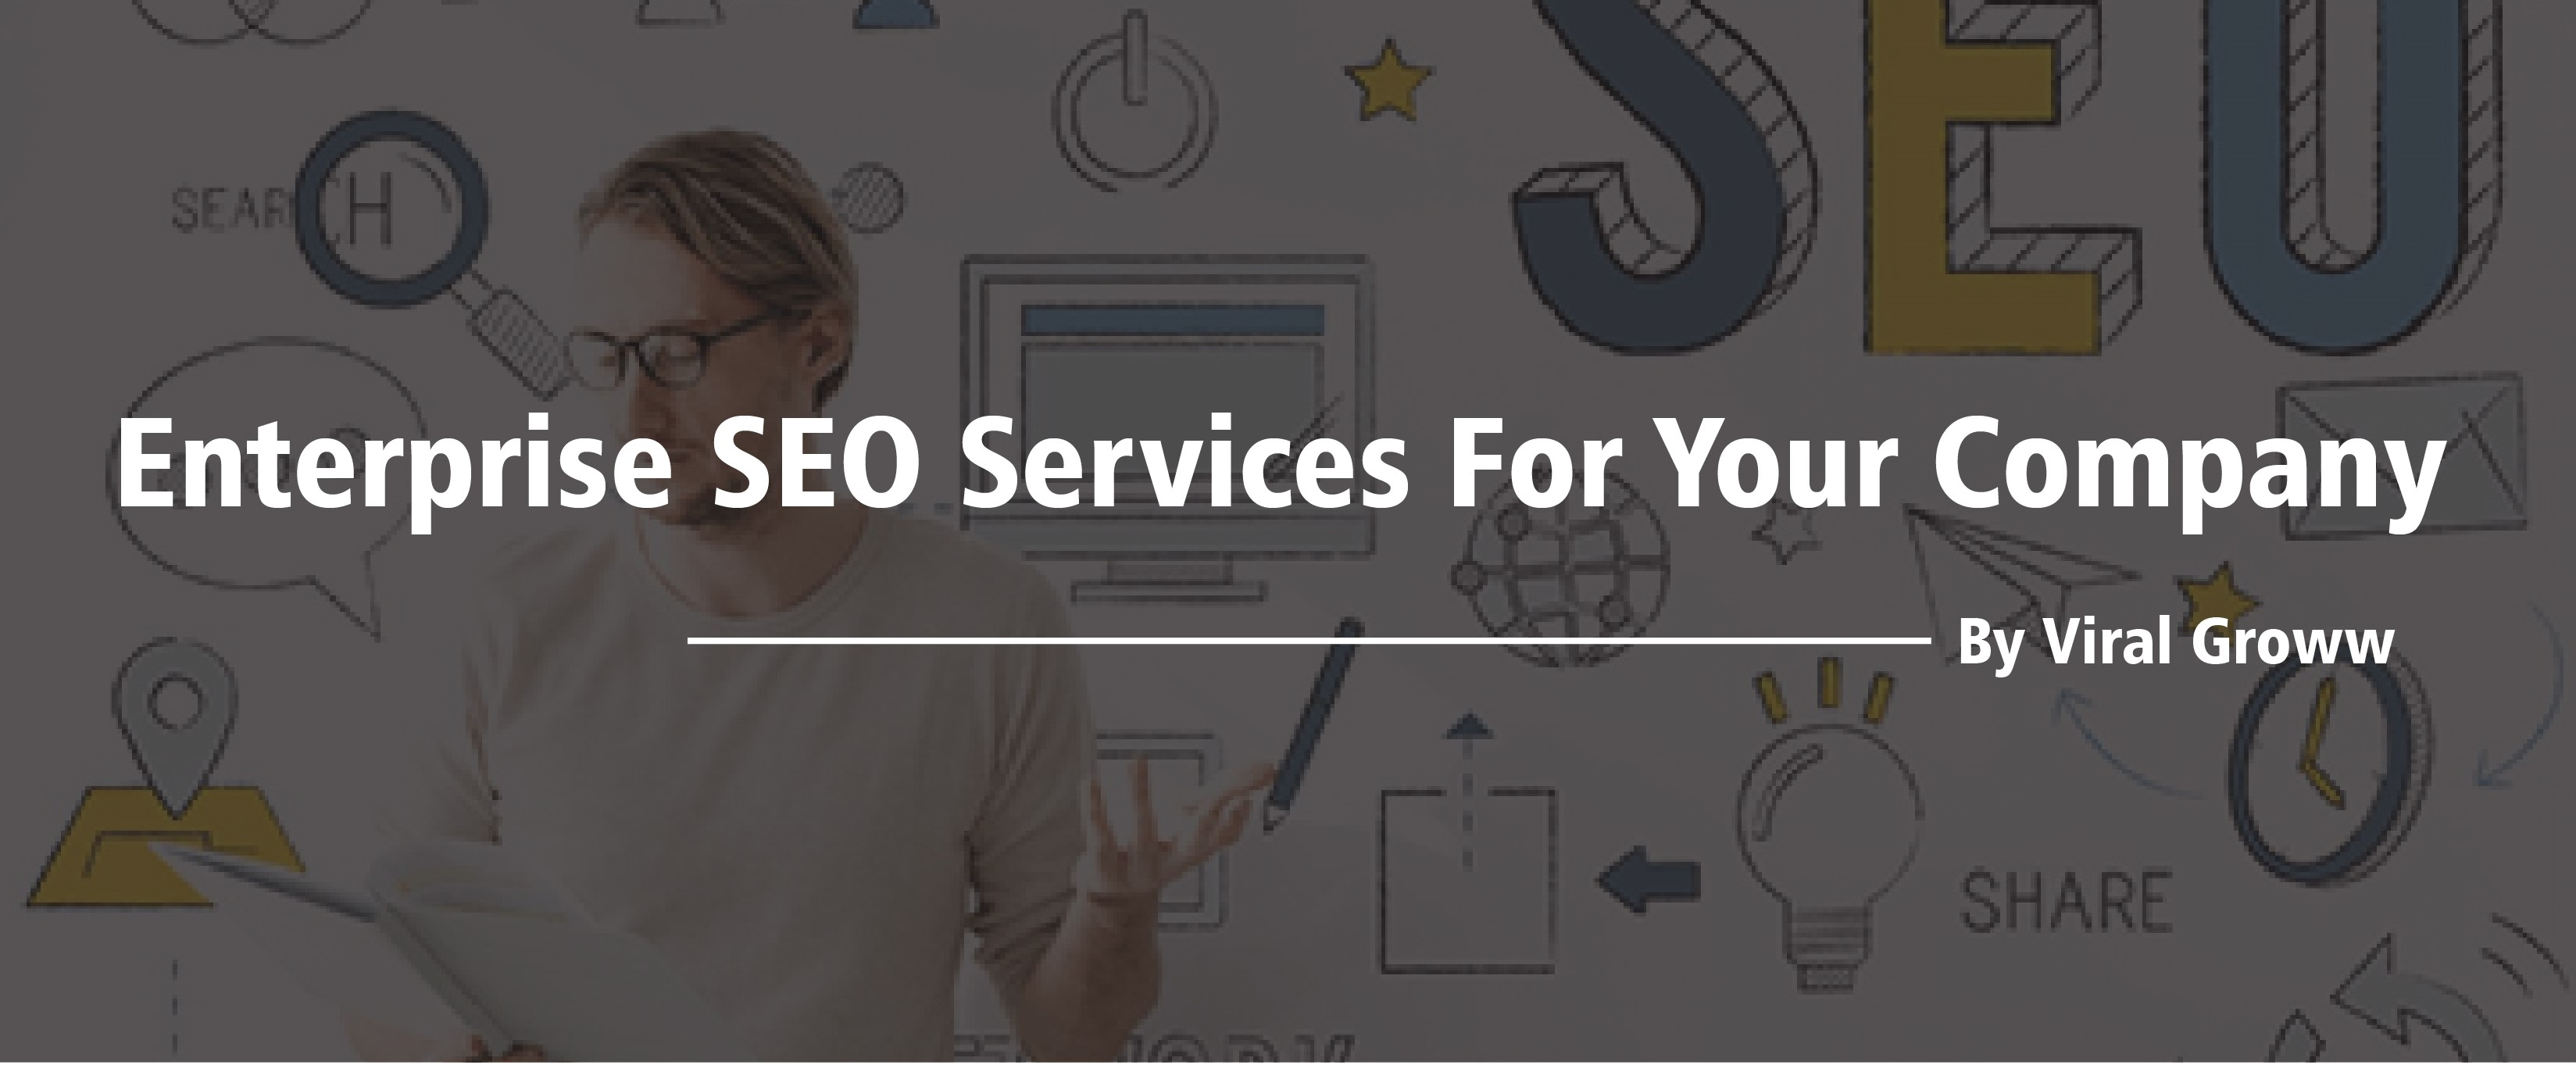 Enterprise SEO Services for your Company